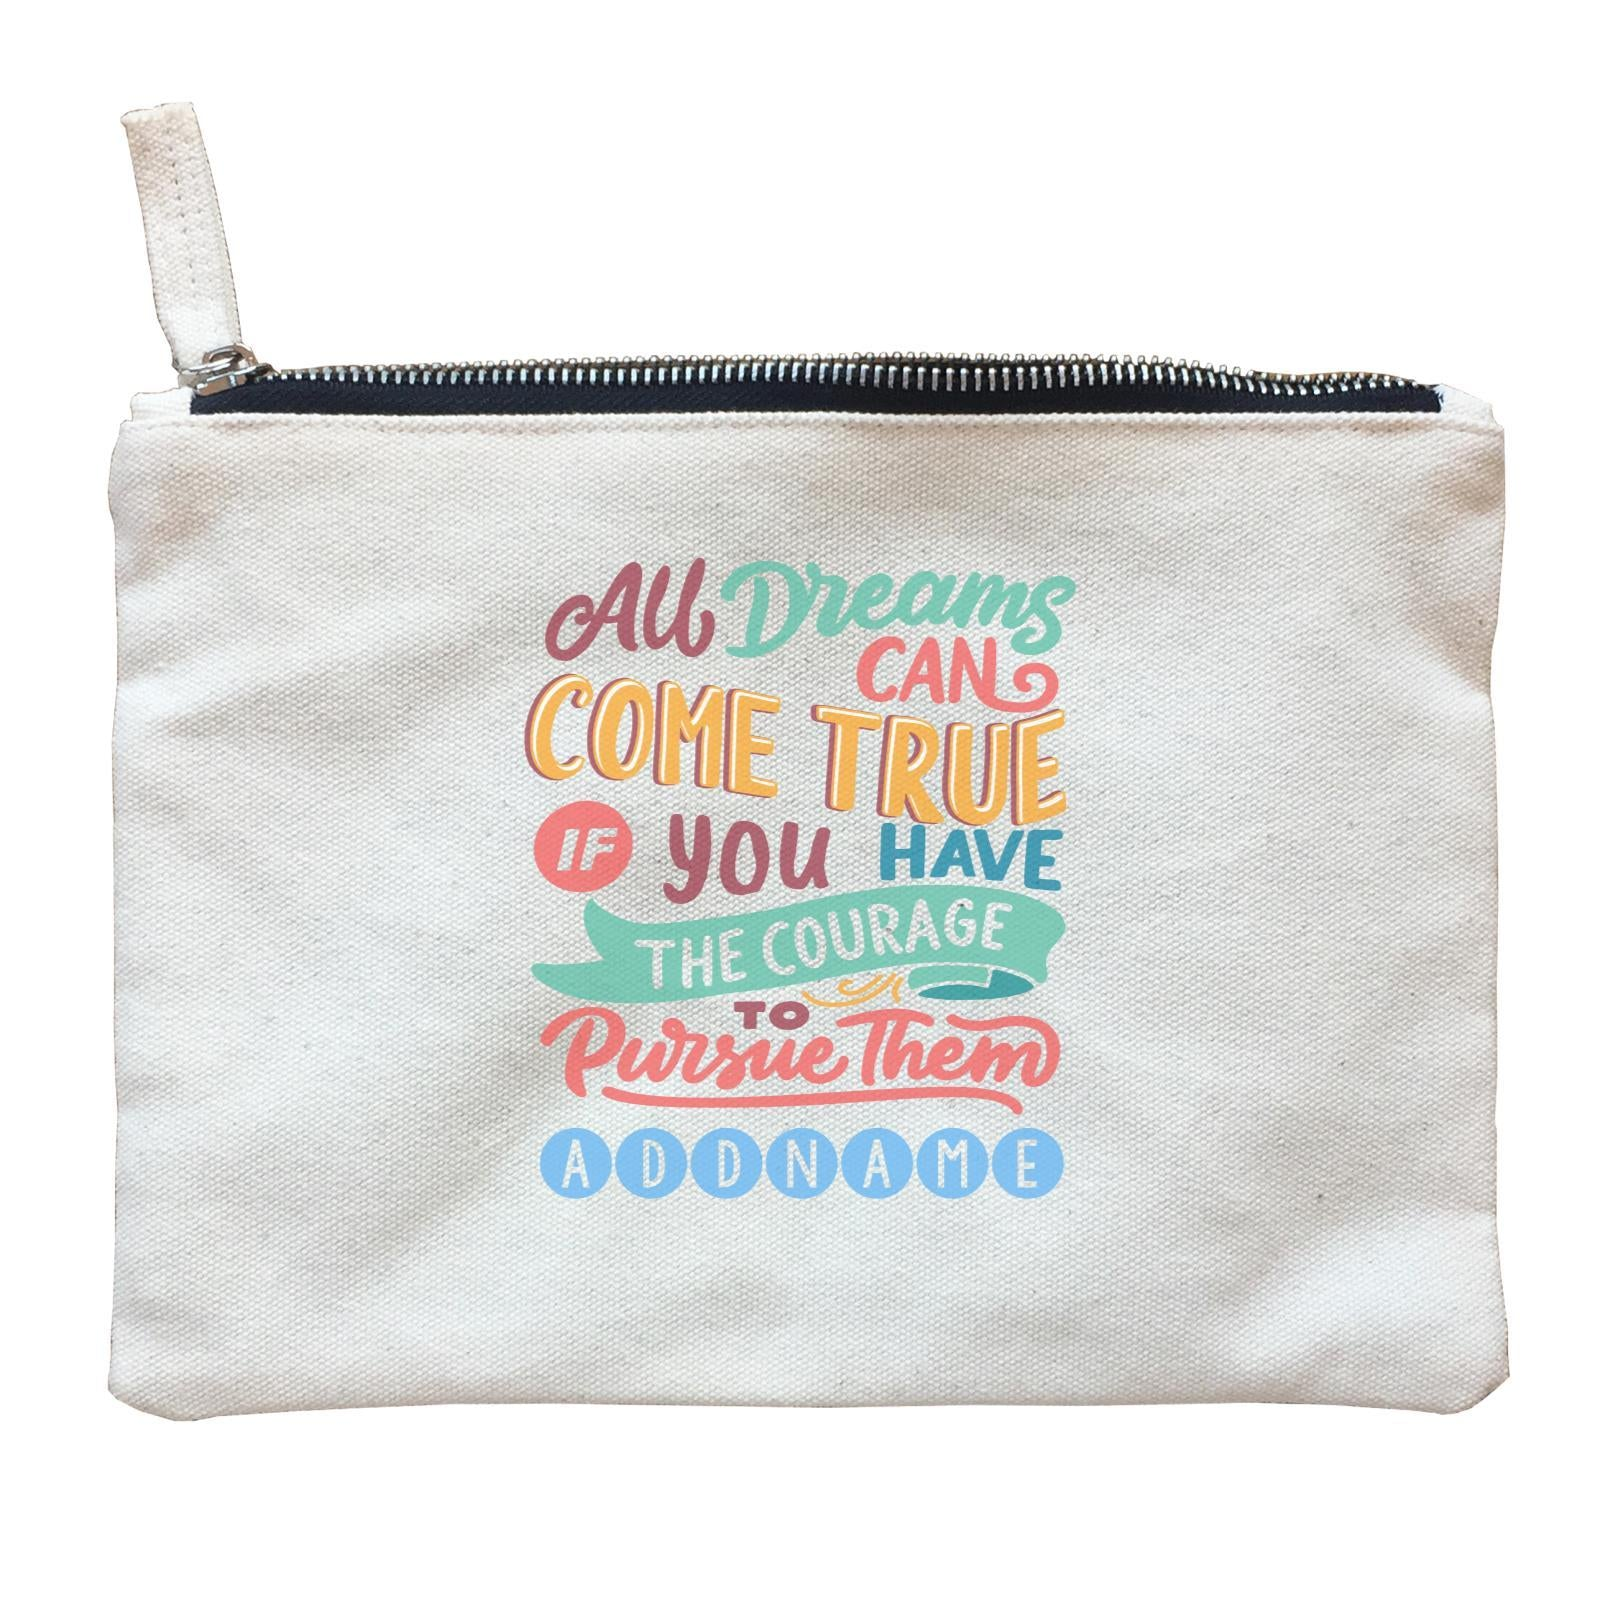 Children's Day Gift Series All Dreams Can Come True Addname  Zipper Pouch